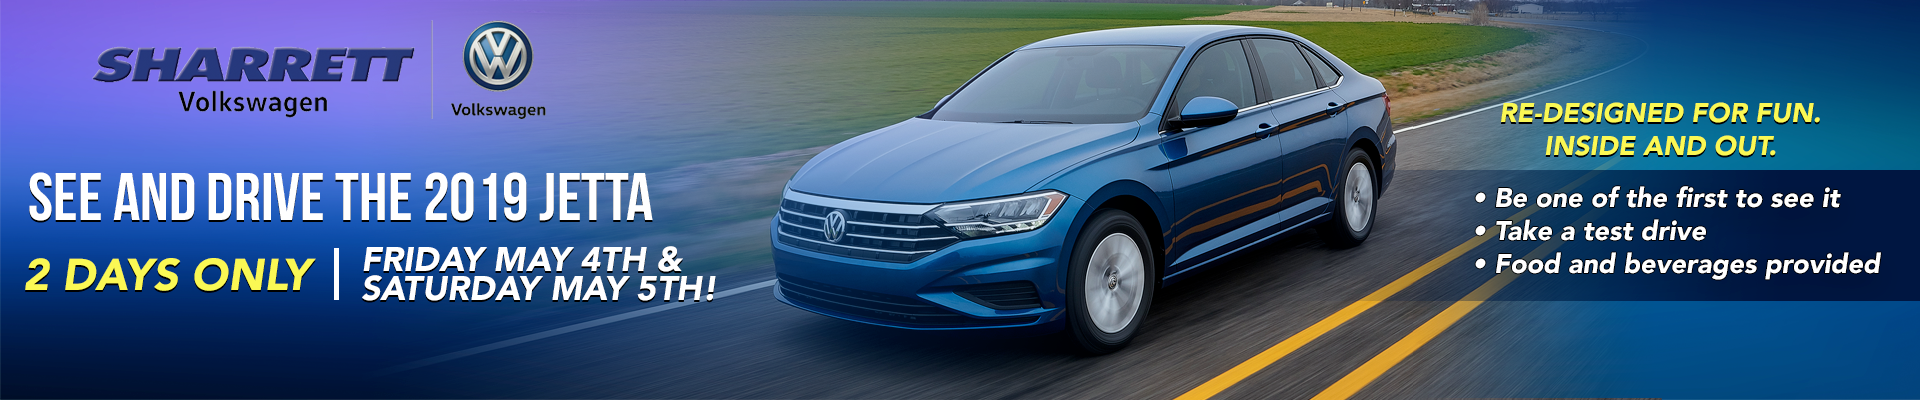 SEE AND DRIVE THE 2019 JETTA